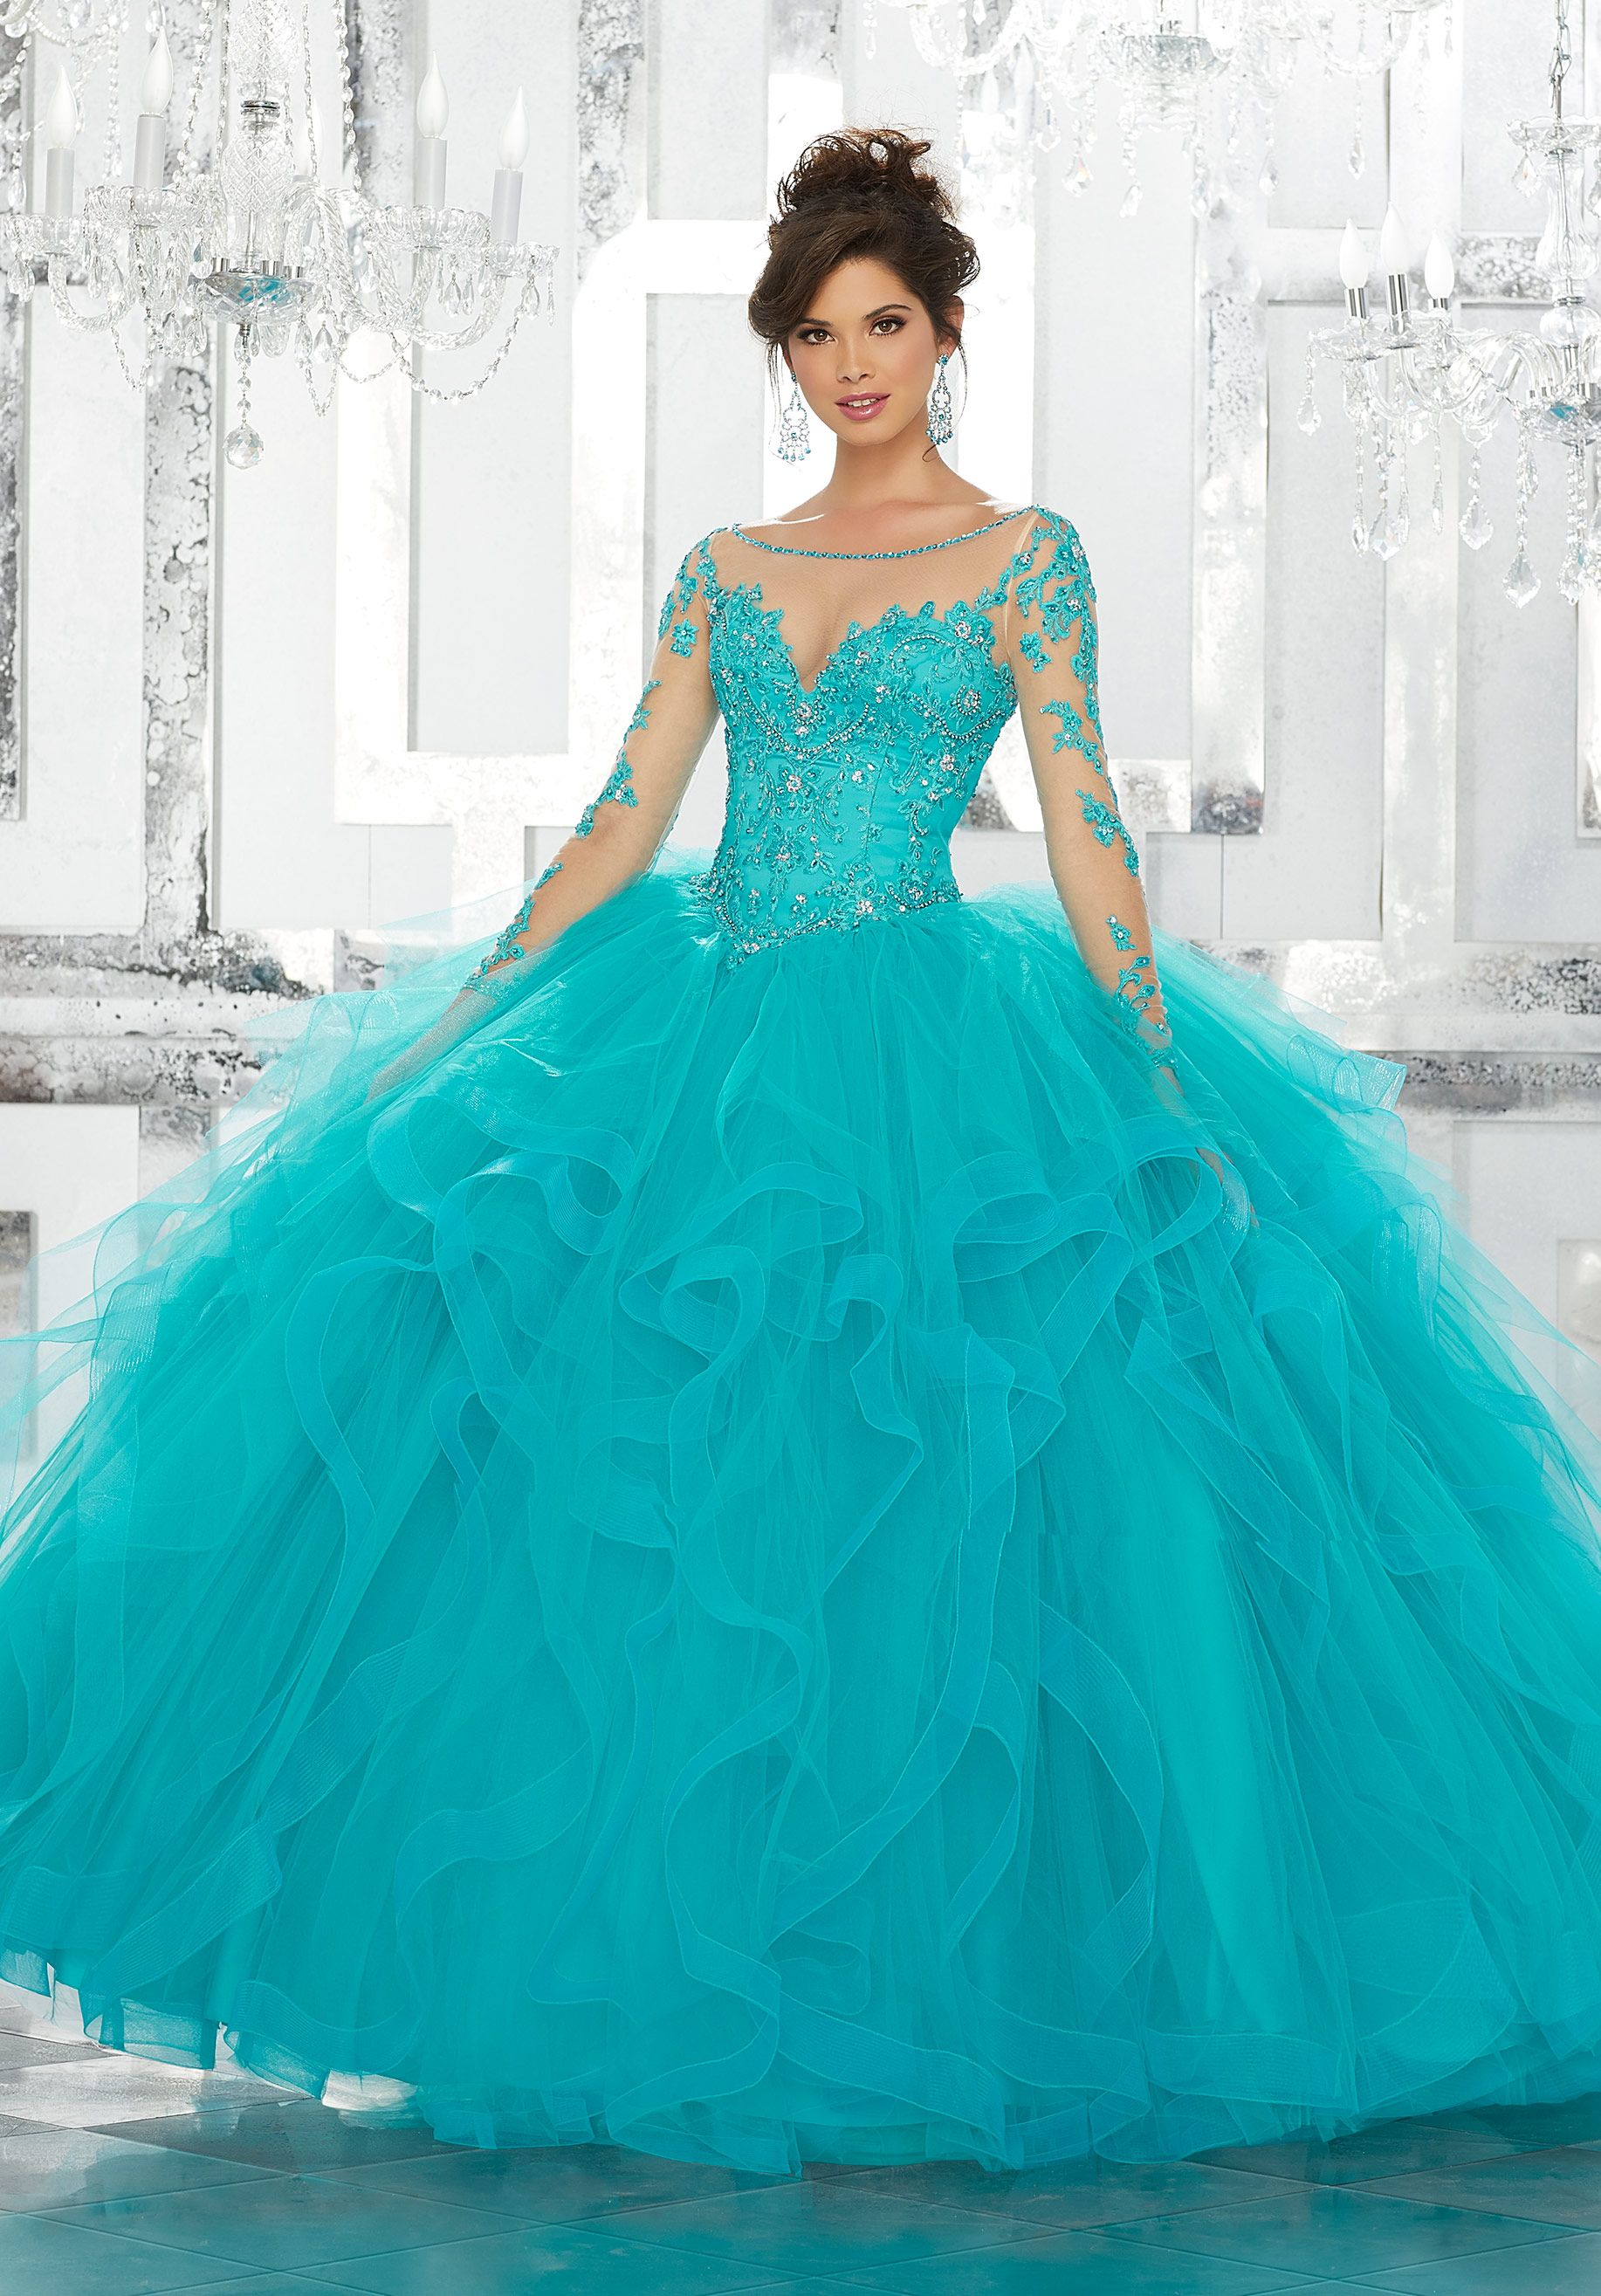 1cf97801d This Gorgeous Quinceañera Ballgown Features a Beaded and Embroidered Bodice  Accented with an Illusion Neckline and Long Illusion Sleeves.